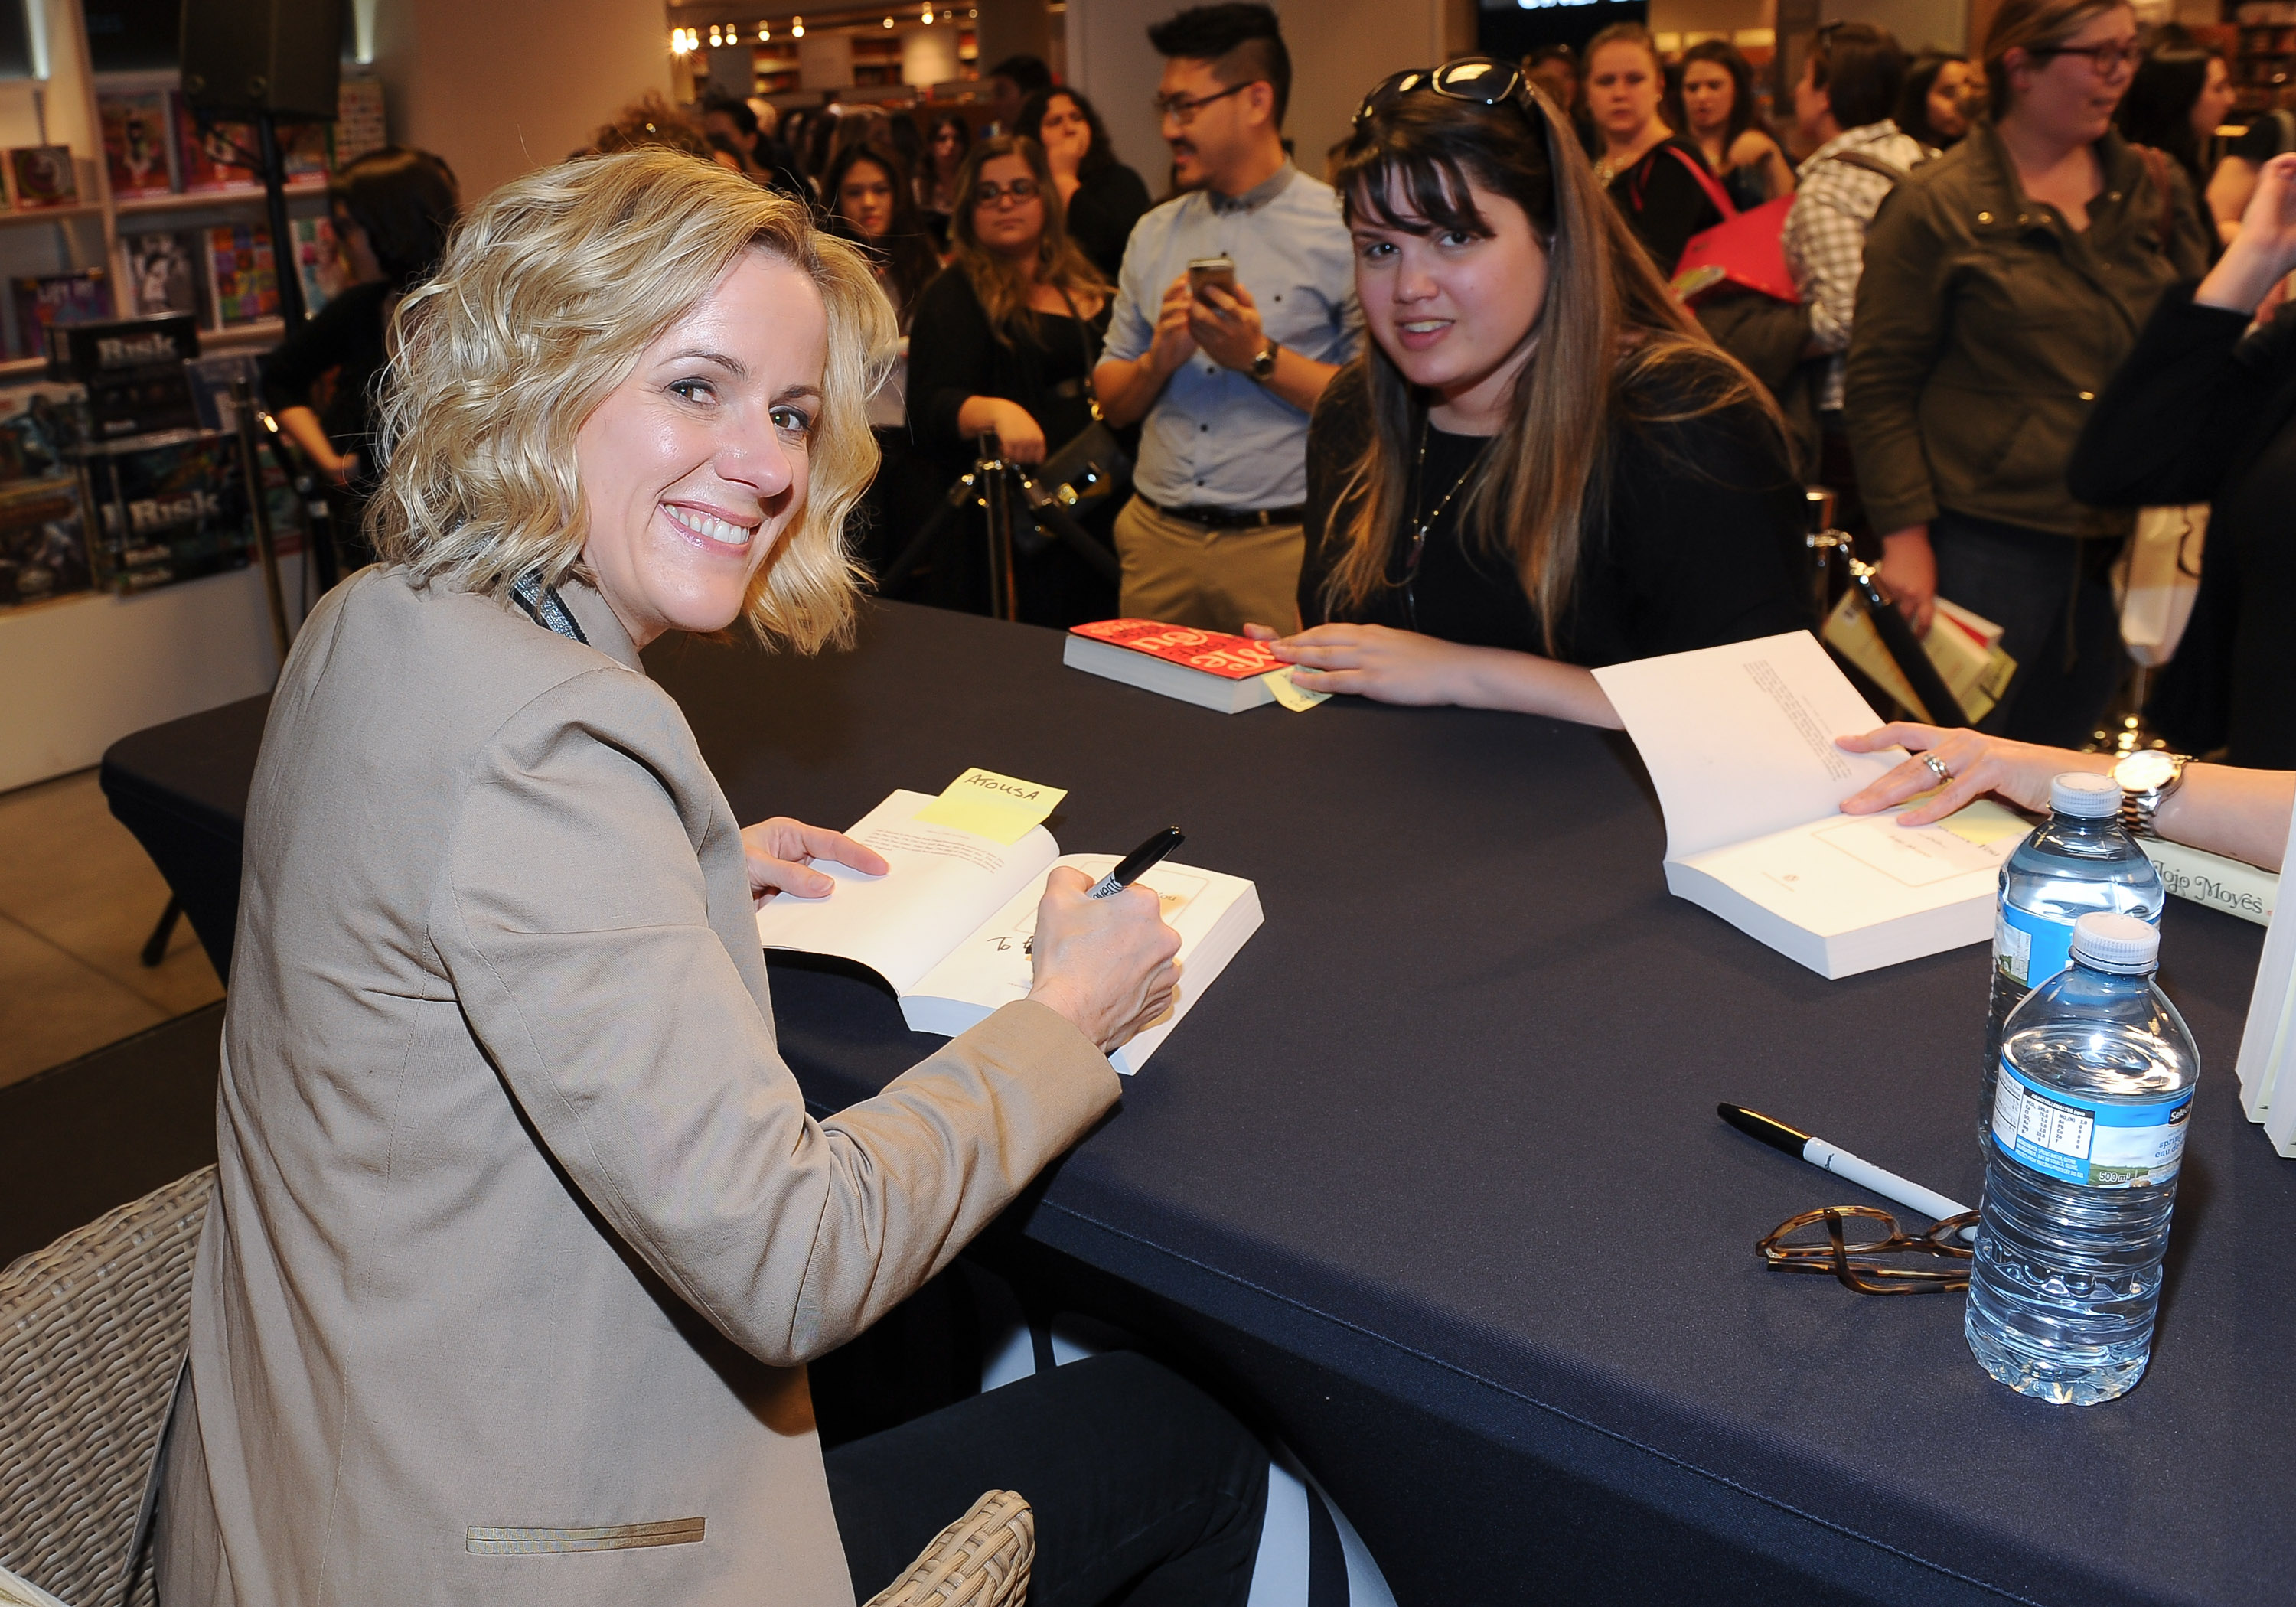 Author Makes Claims Against Jojo Moyes Book